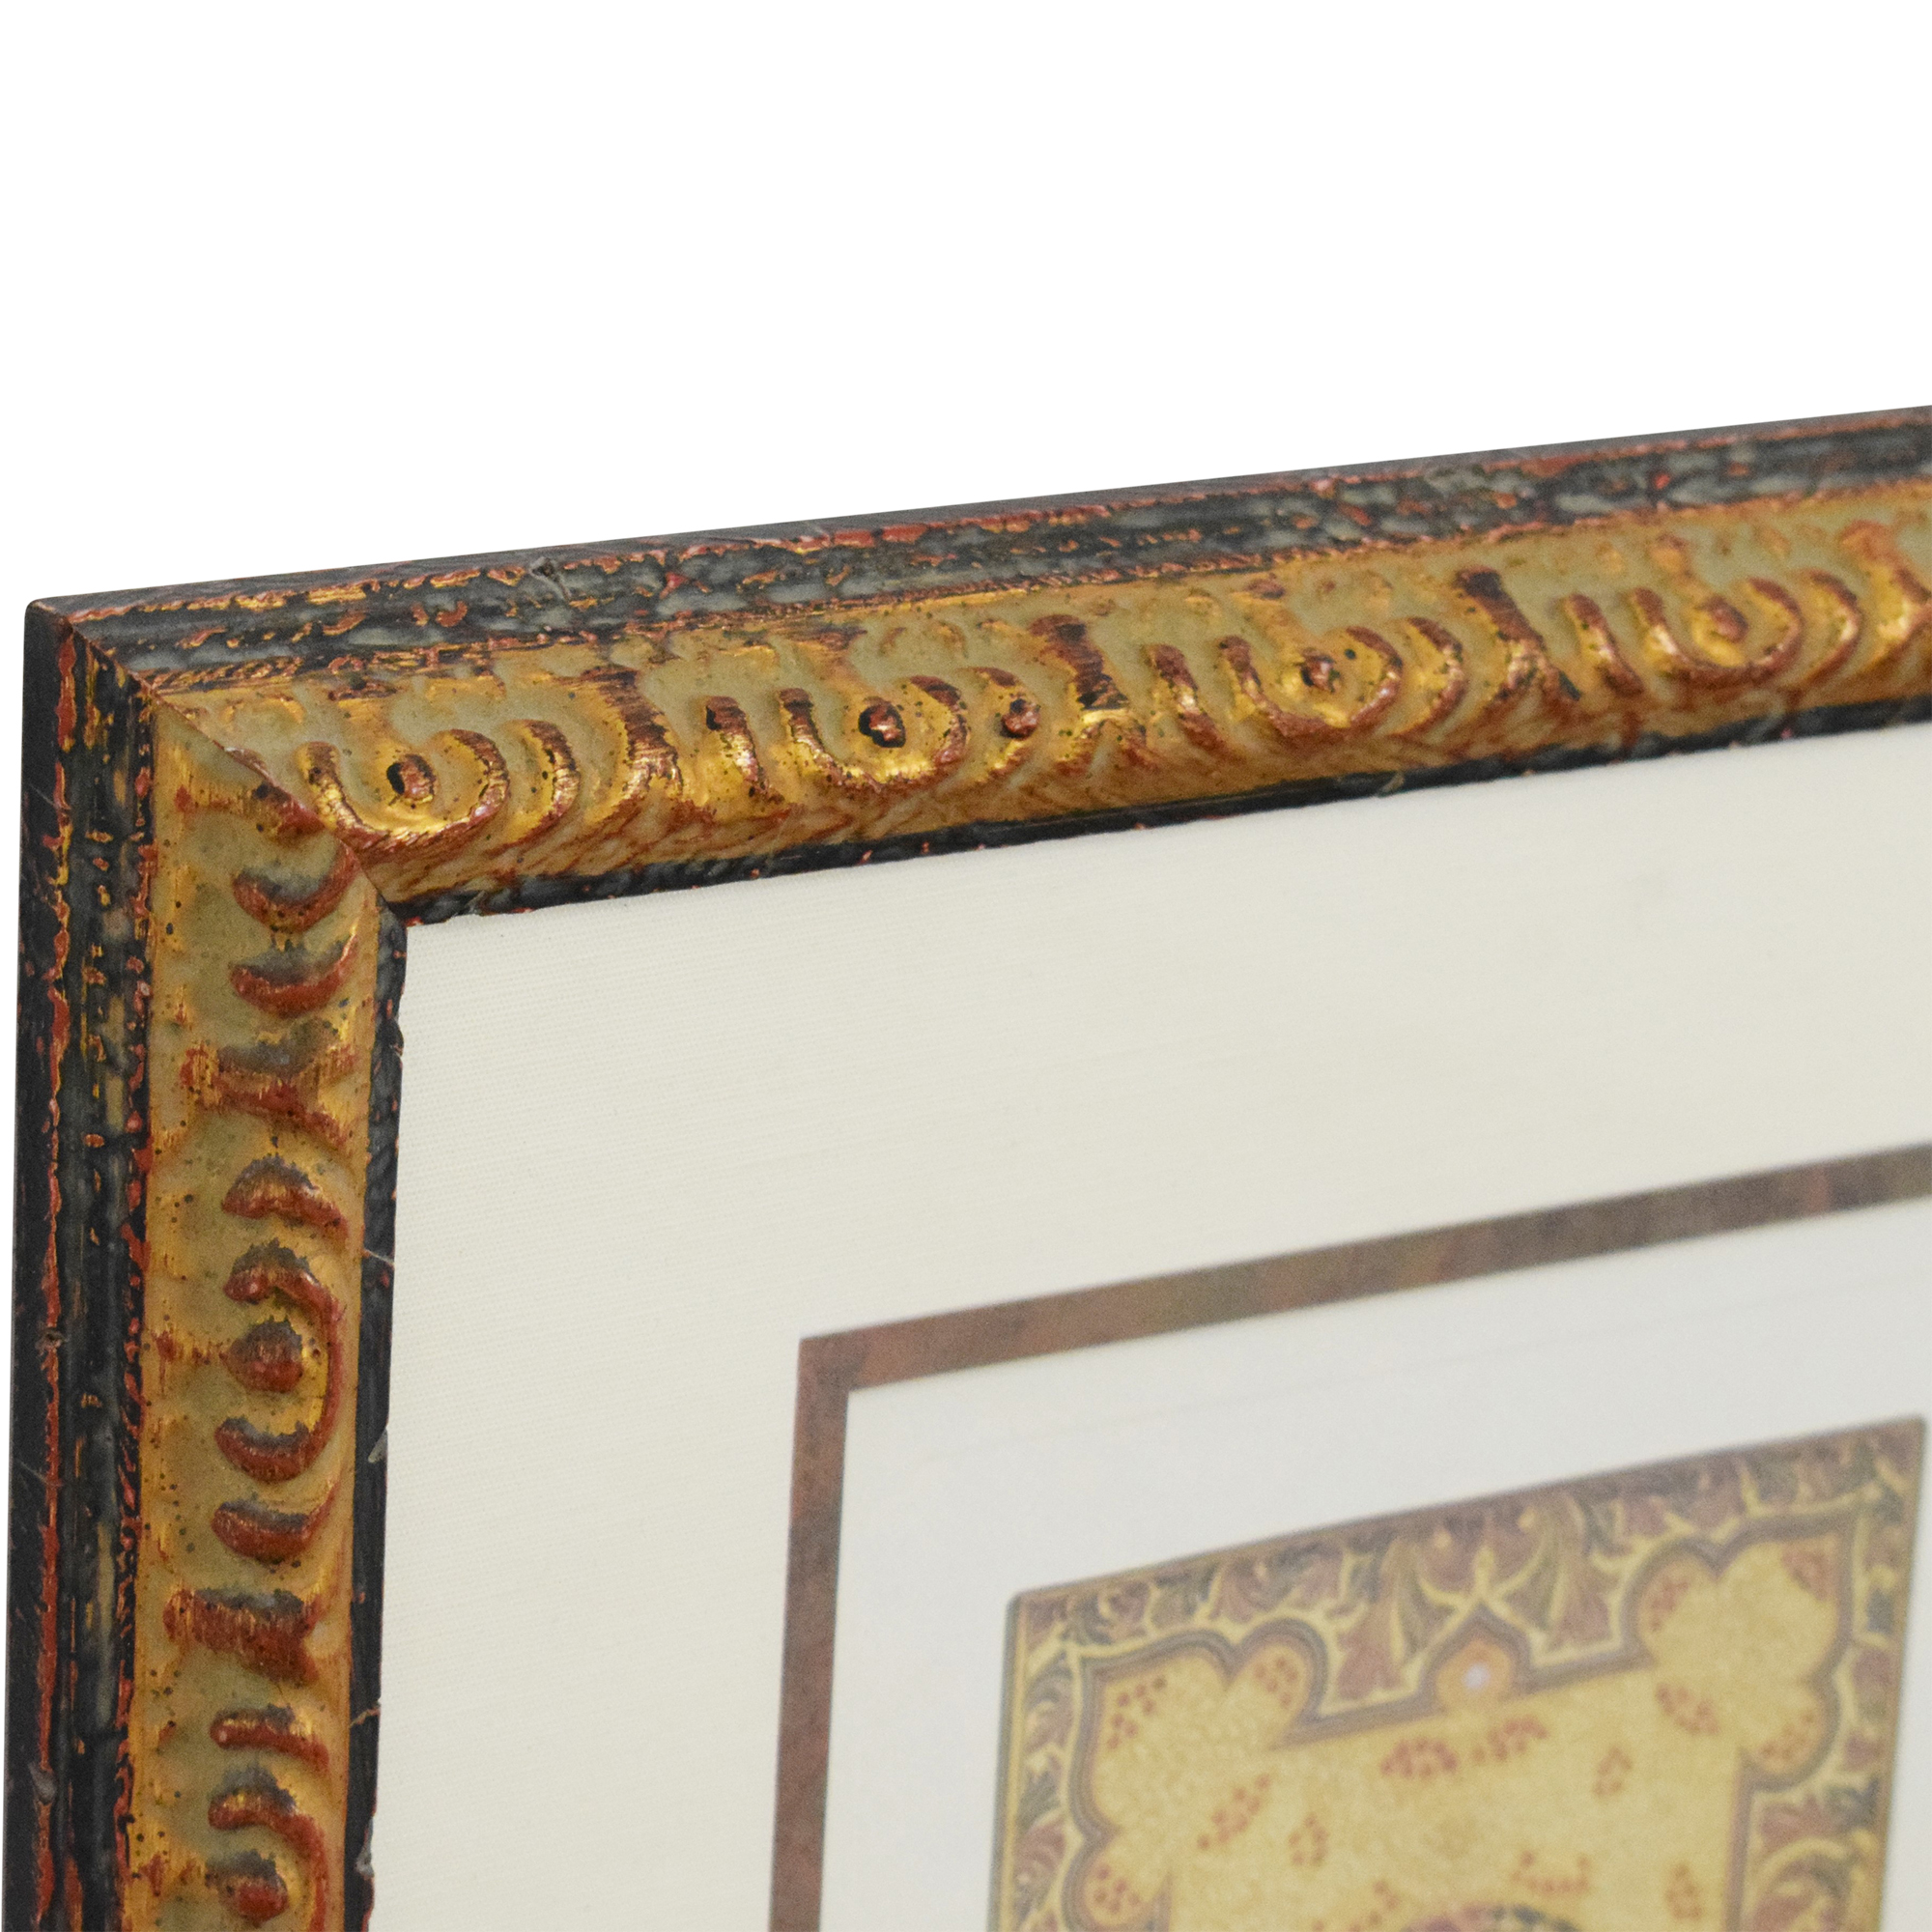 Ethan Allen Ethan Allen Jeweled Boxes Wall Art nyc